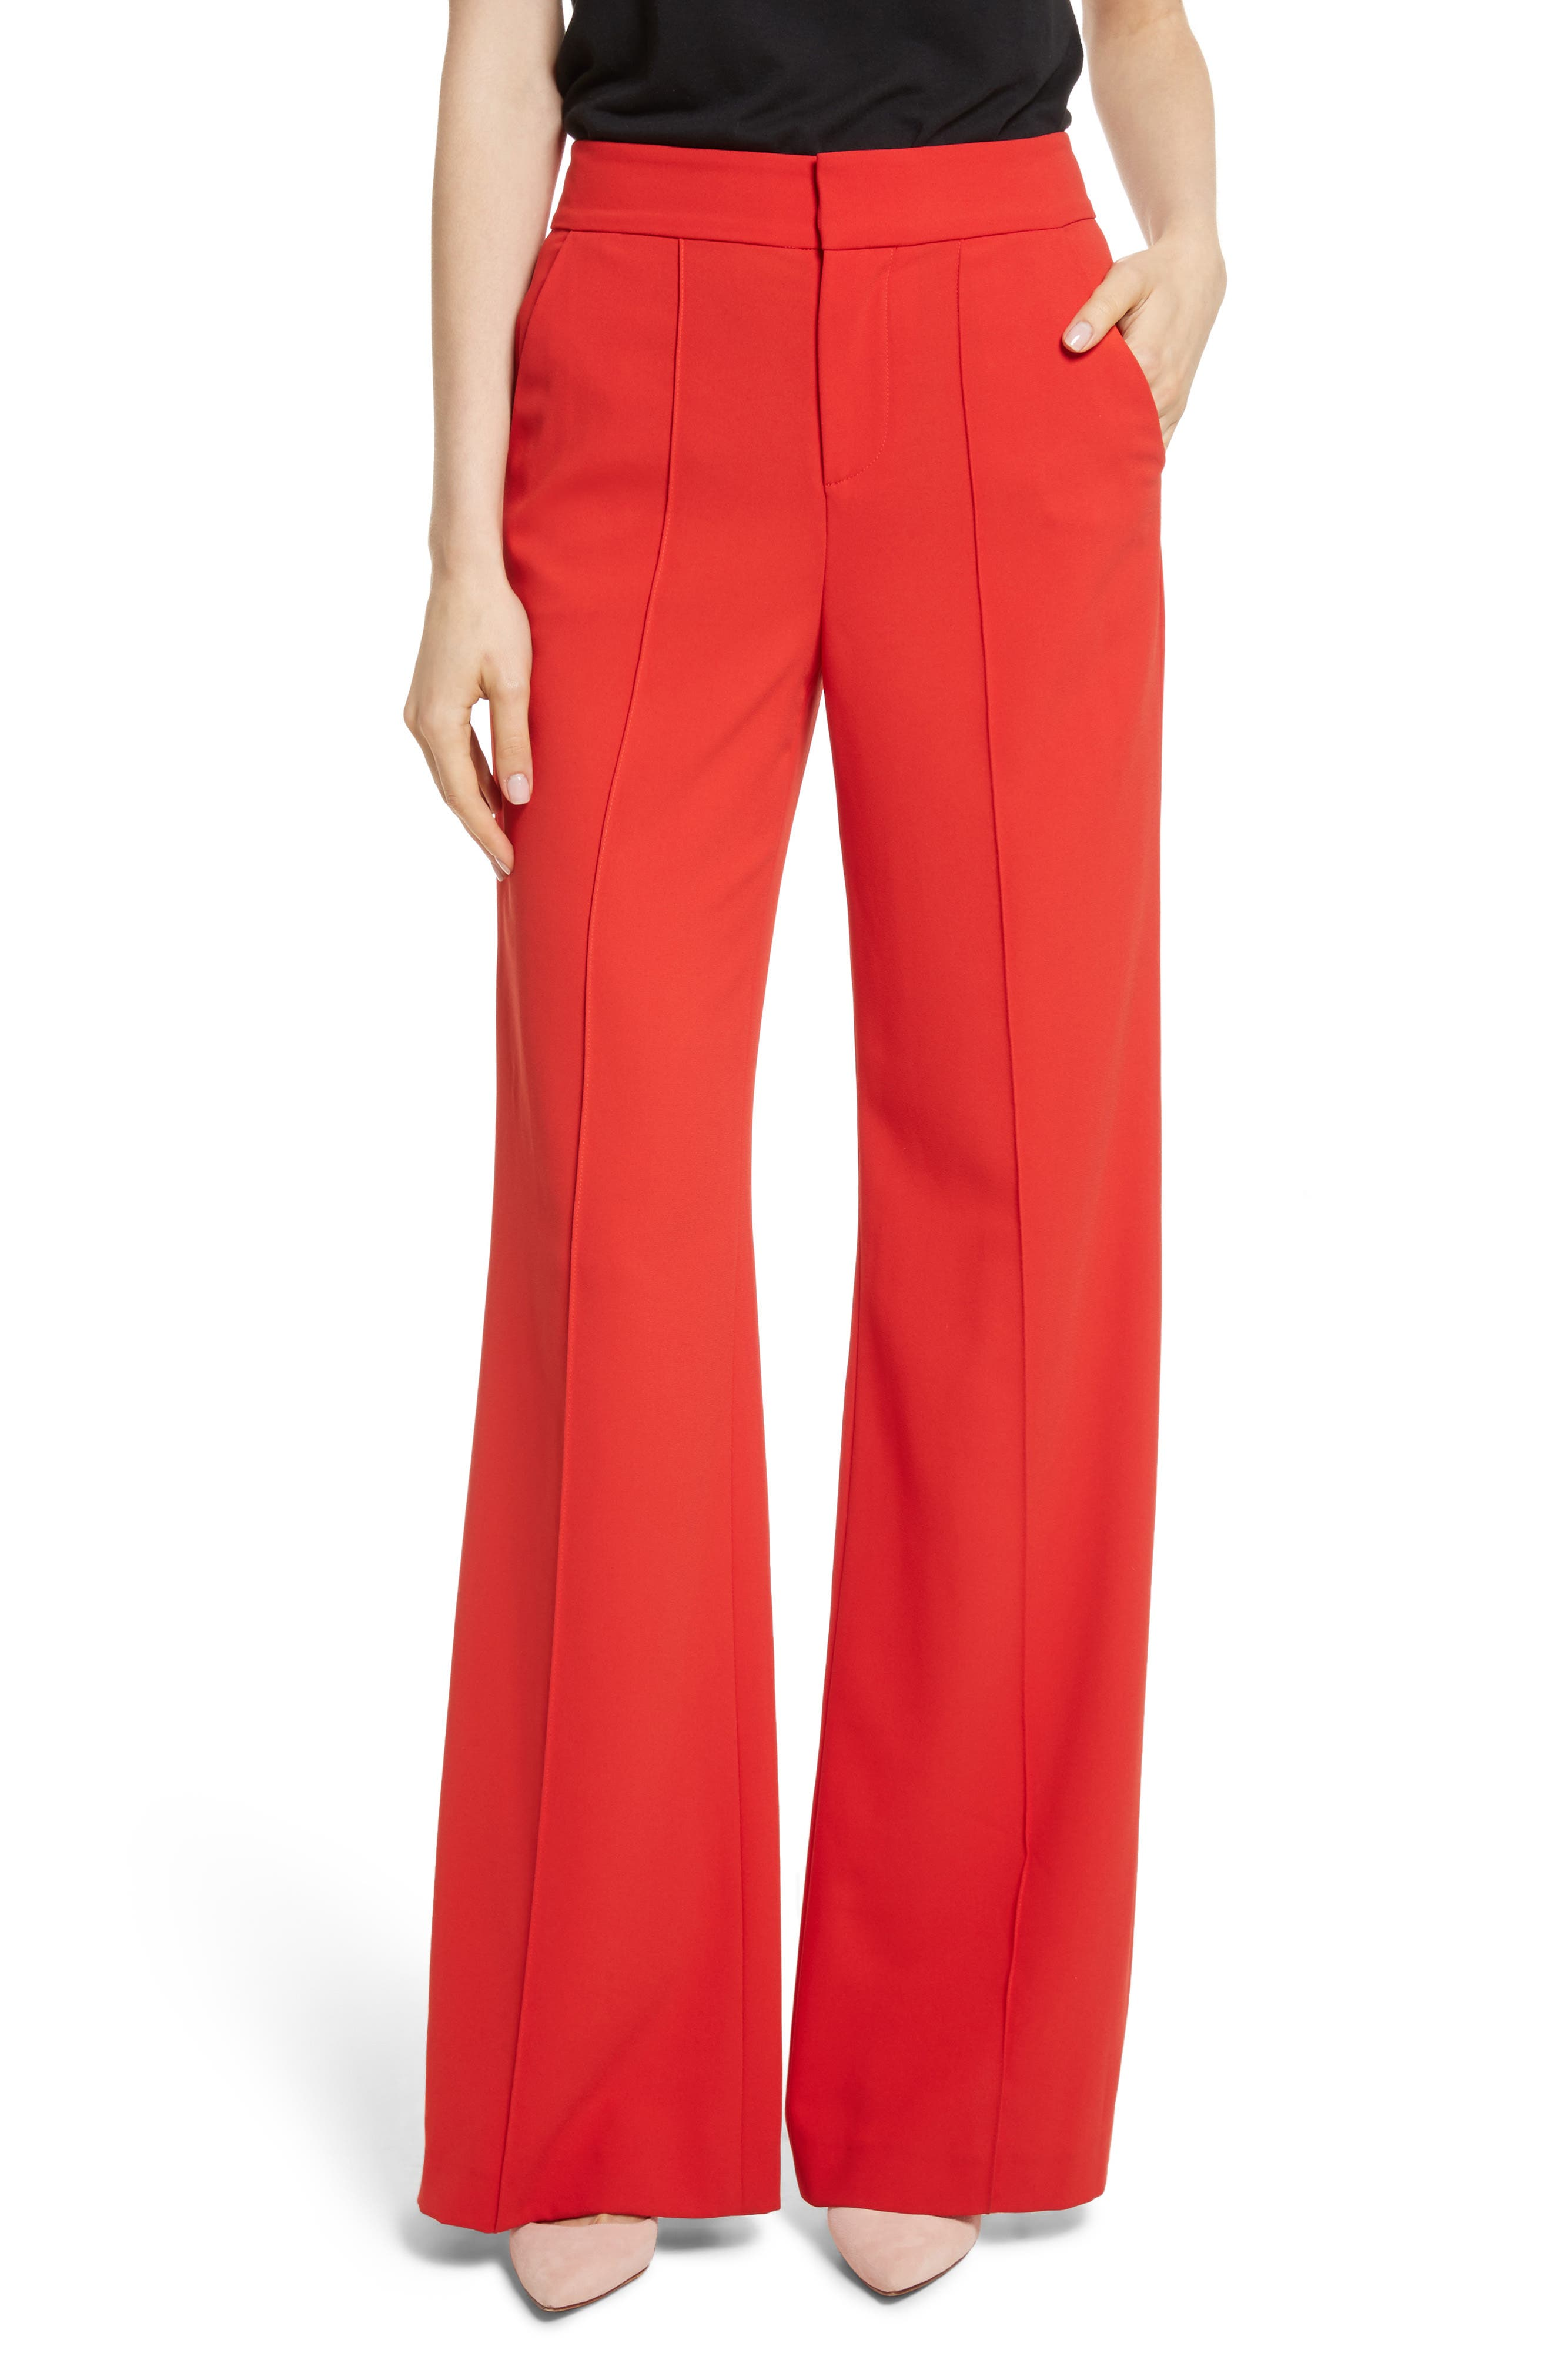 Alice + Olivia Dylan High-Waist Wide Leg Pants